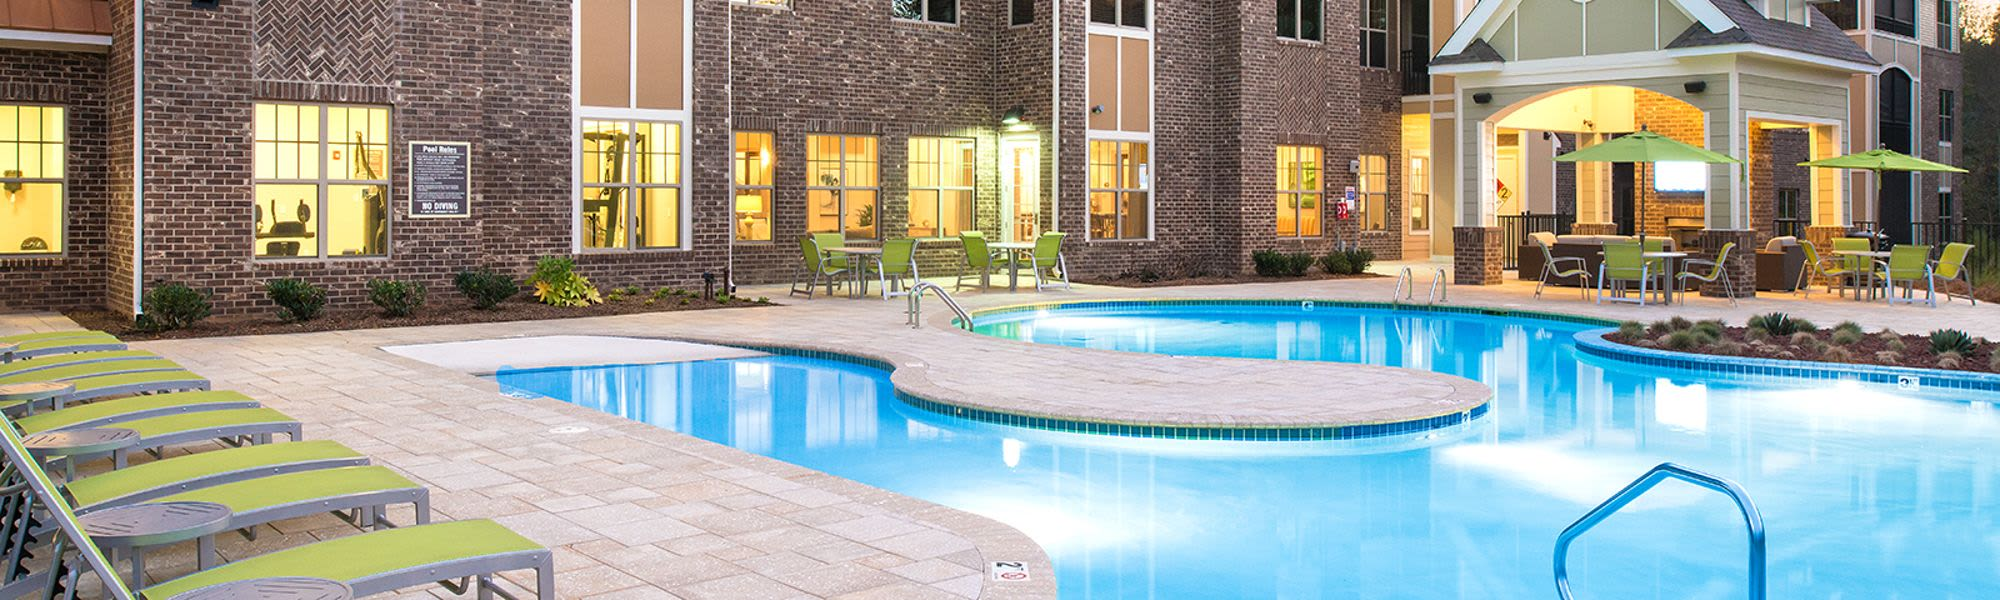 Luxury amenities at our apartments in Huntersville, NC